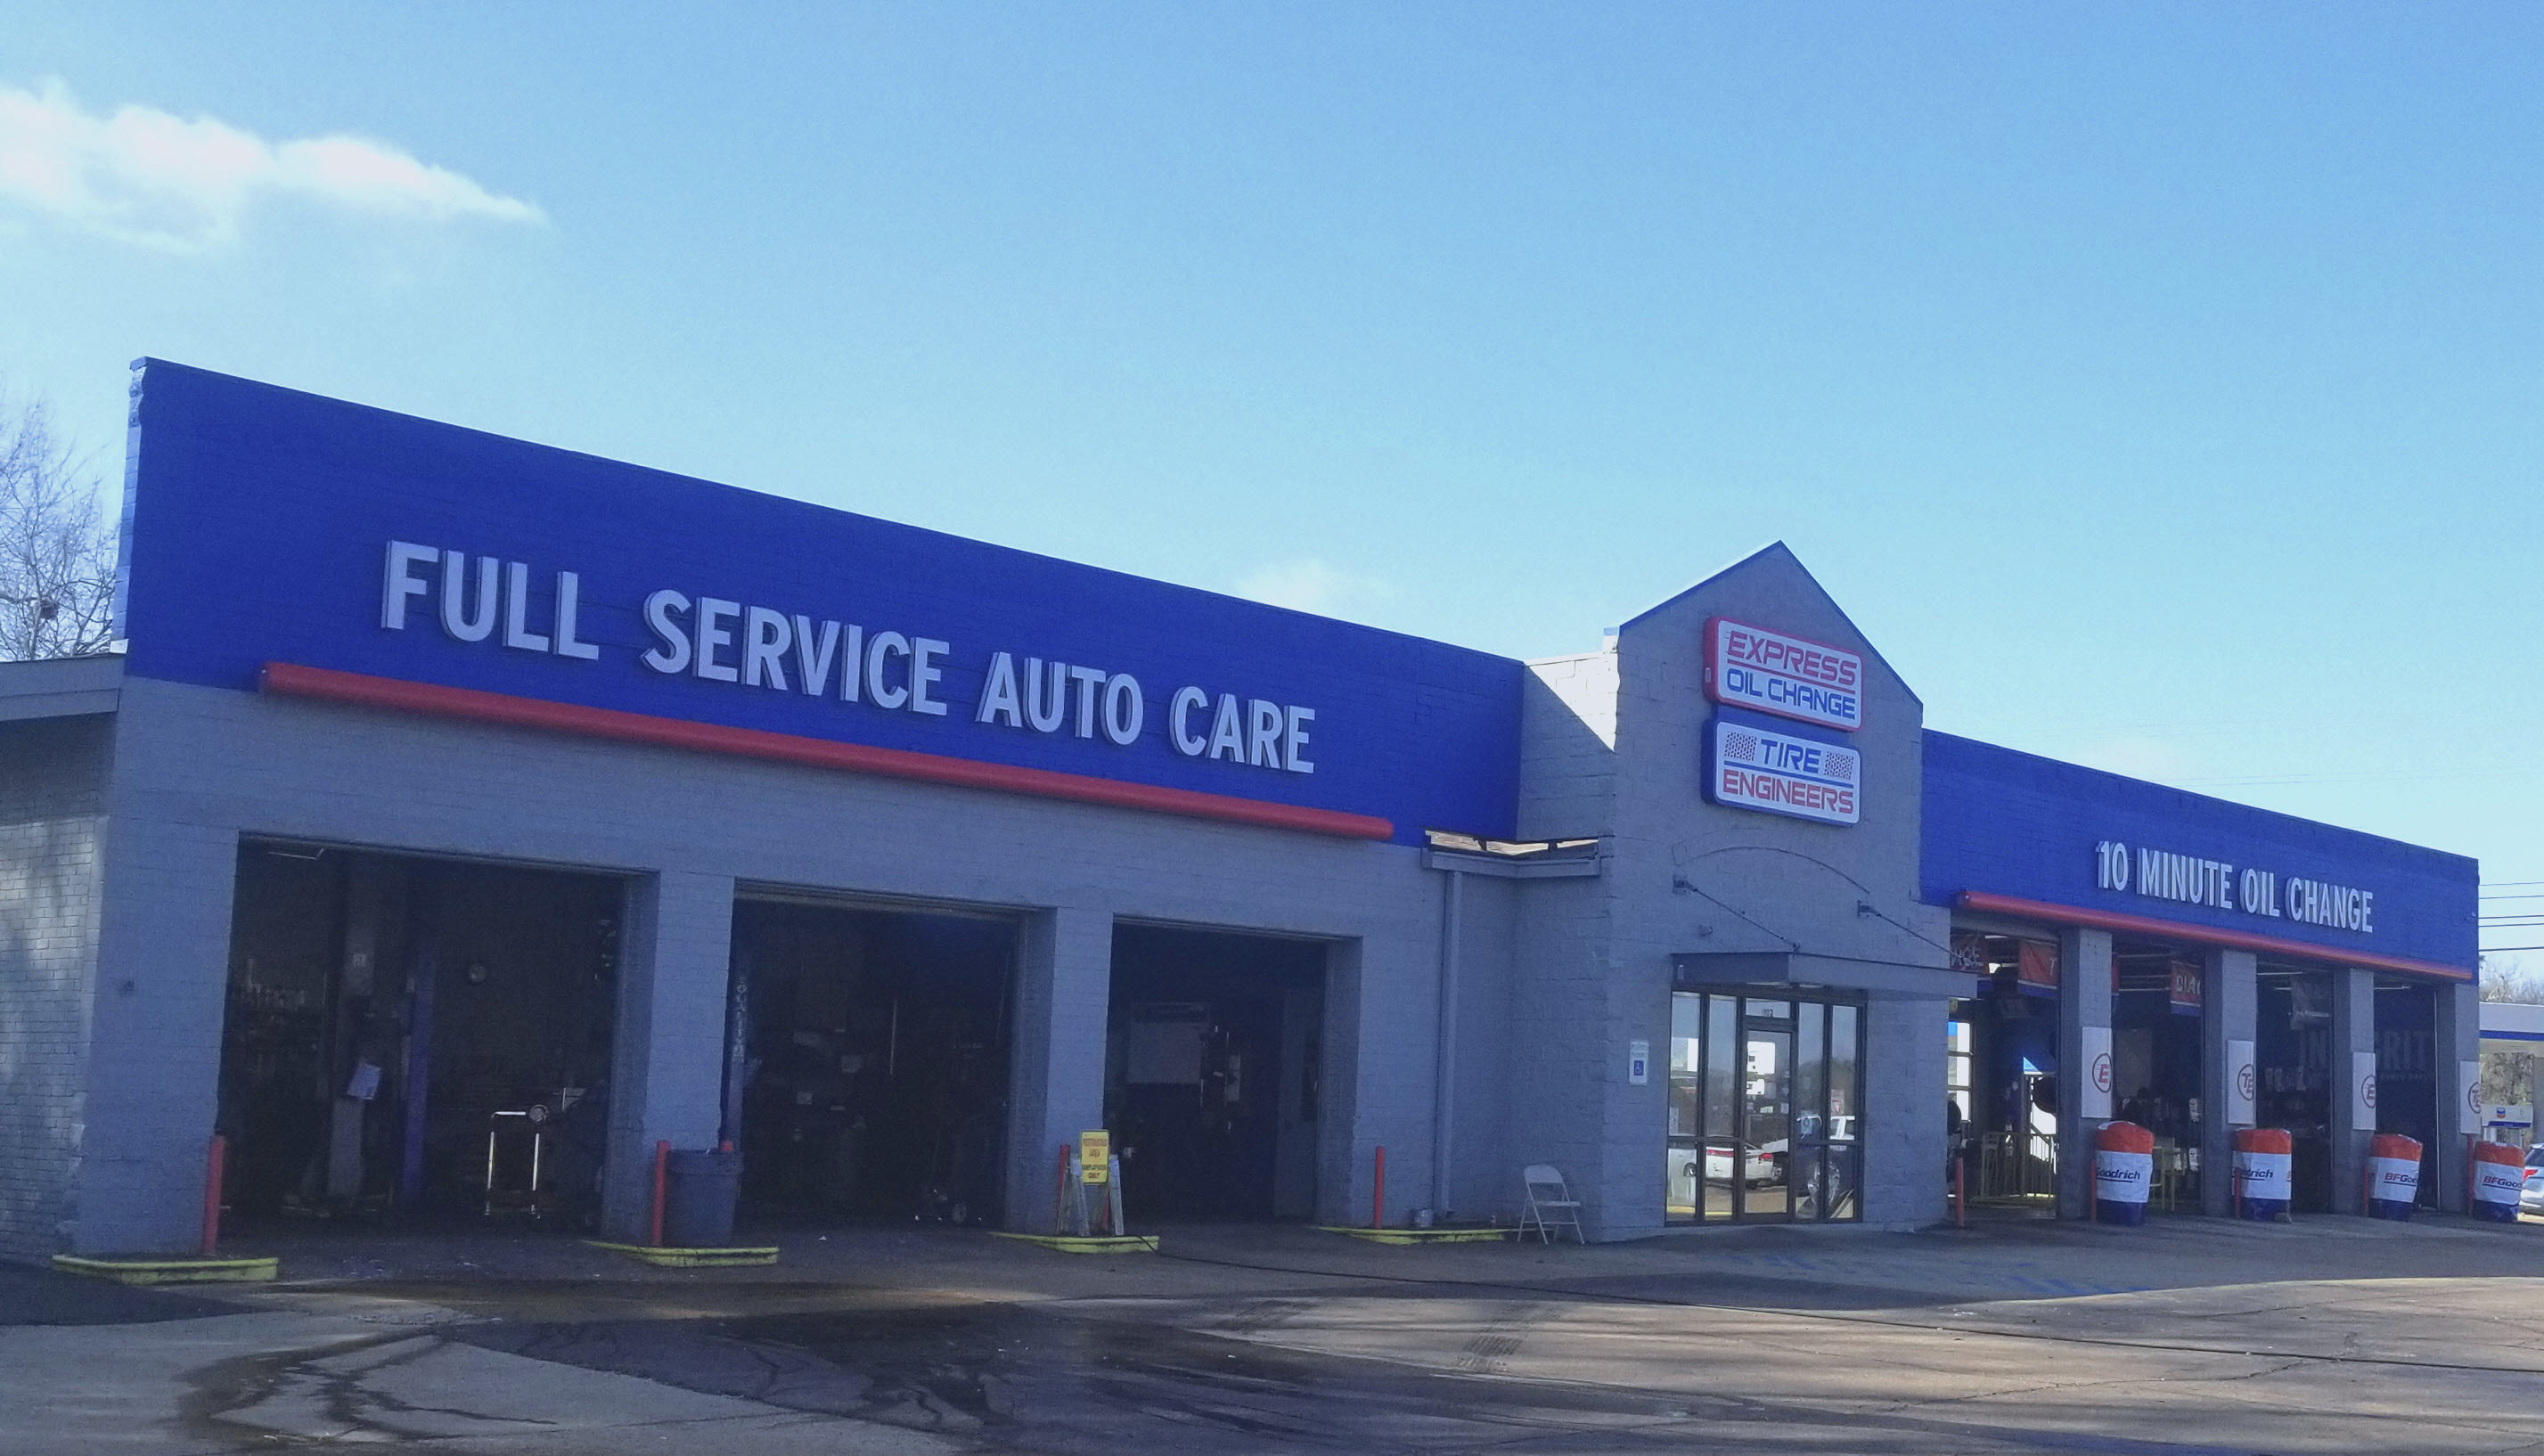 Express Oil Change & Tire Engineers at Columbus, MS - Alabama Street store